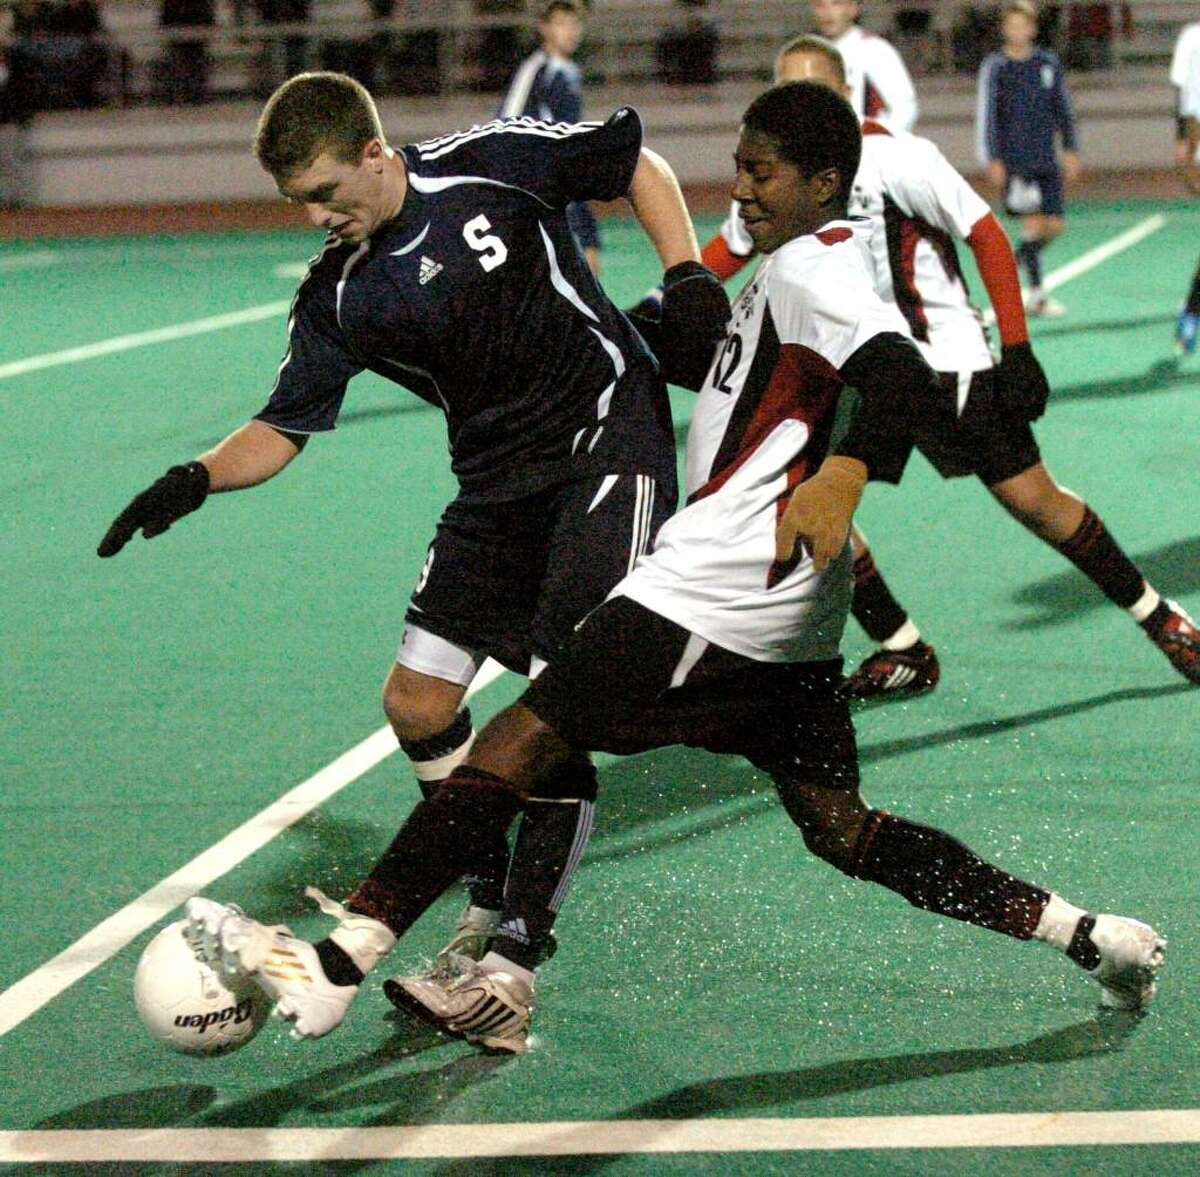 Central's #12 Shakir Terralonge, right, tries to get the ball away from Staples' #9 Brendan Lesch, during FCIAC soccer action in Bridgeport, Conn. on Wednesday Oct. 28, 2009. Central beat Staples 2-0.